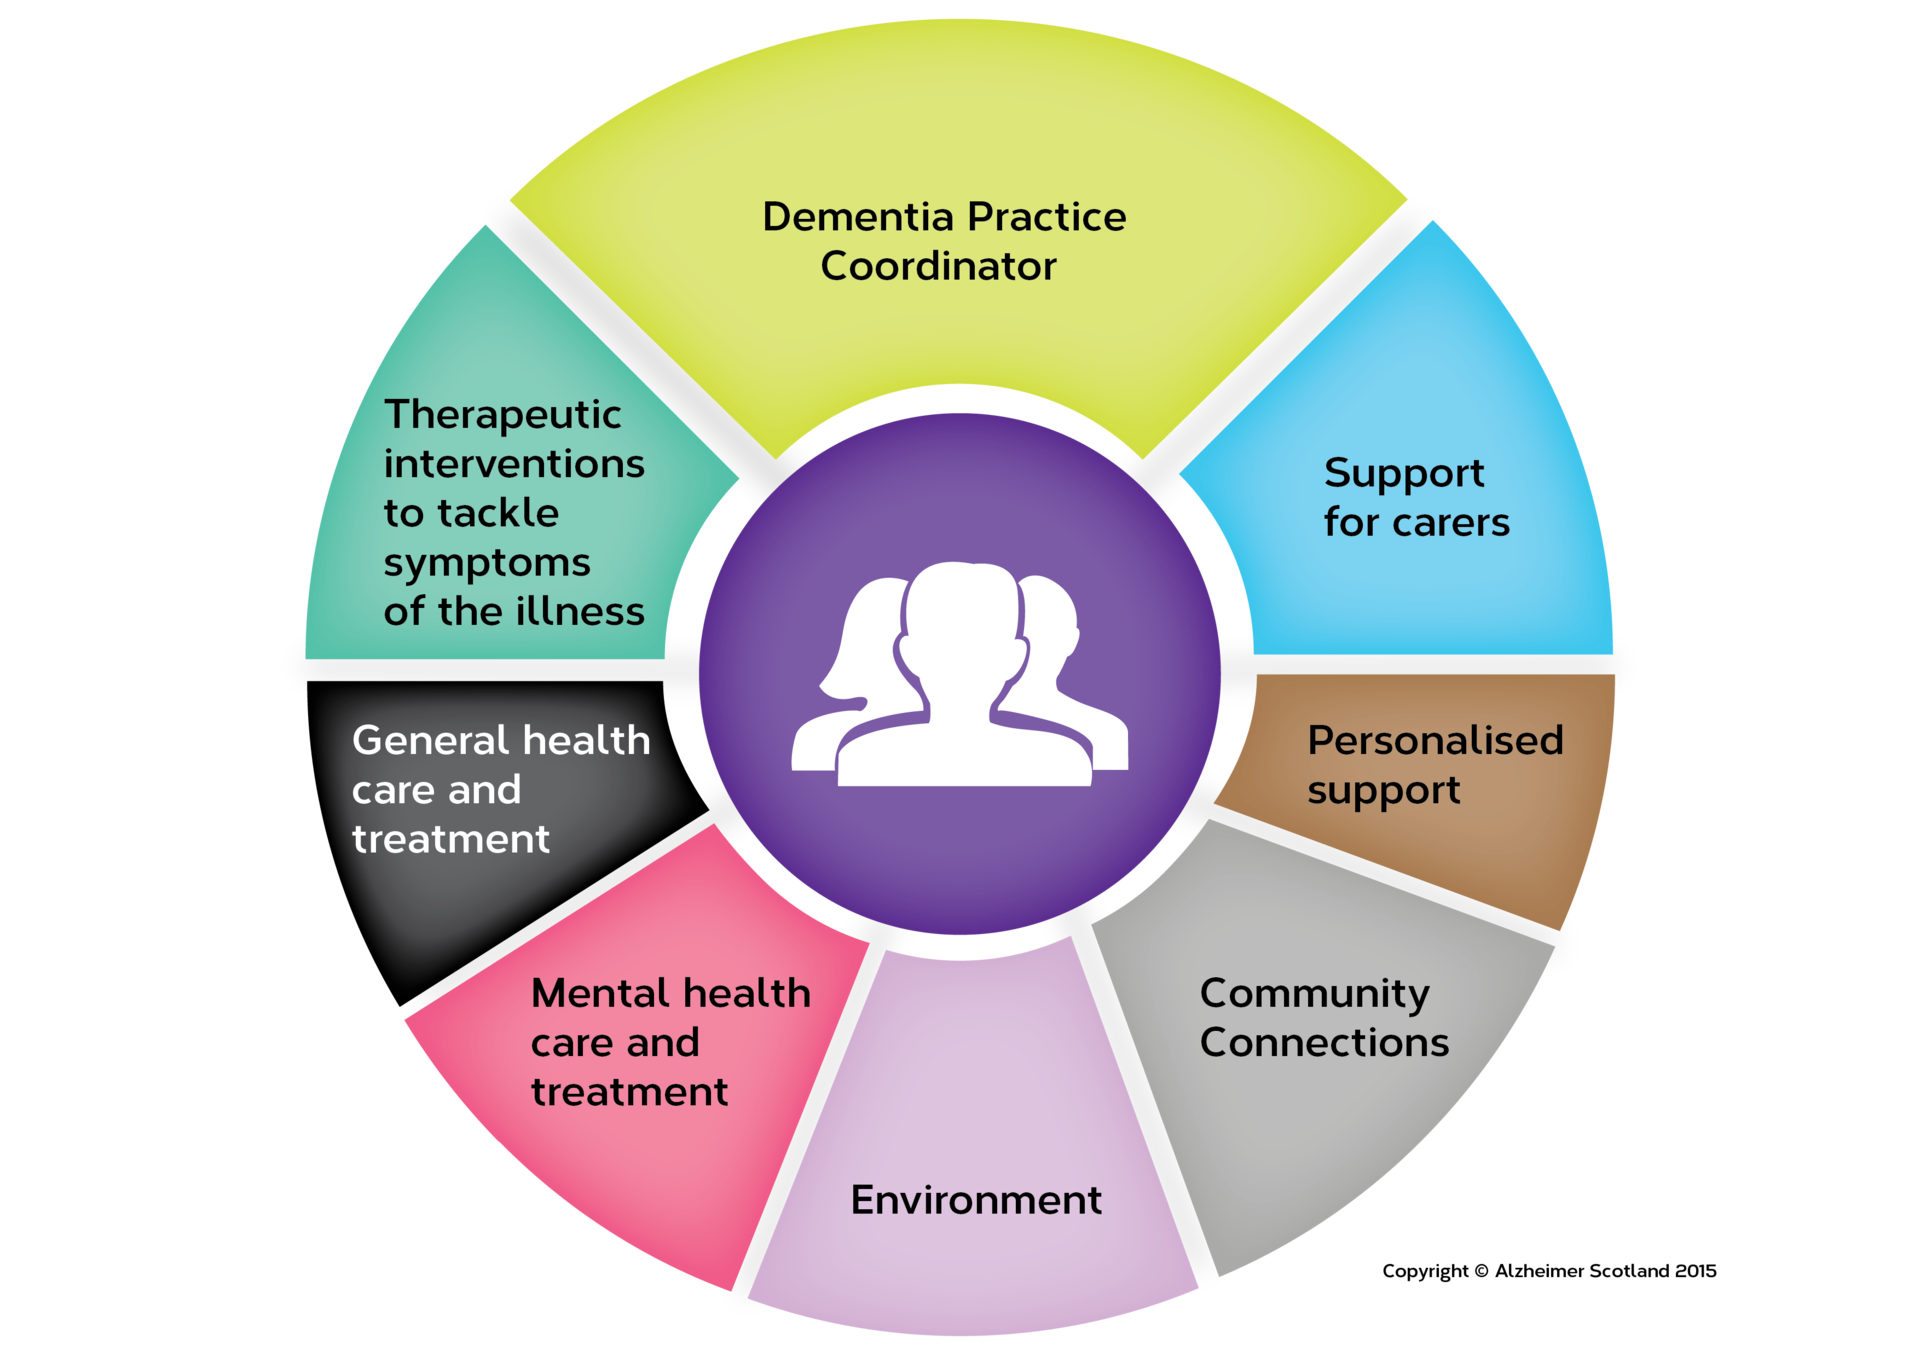 8 Pillars Model Of Community Support Campaigning